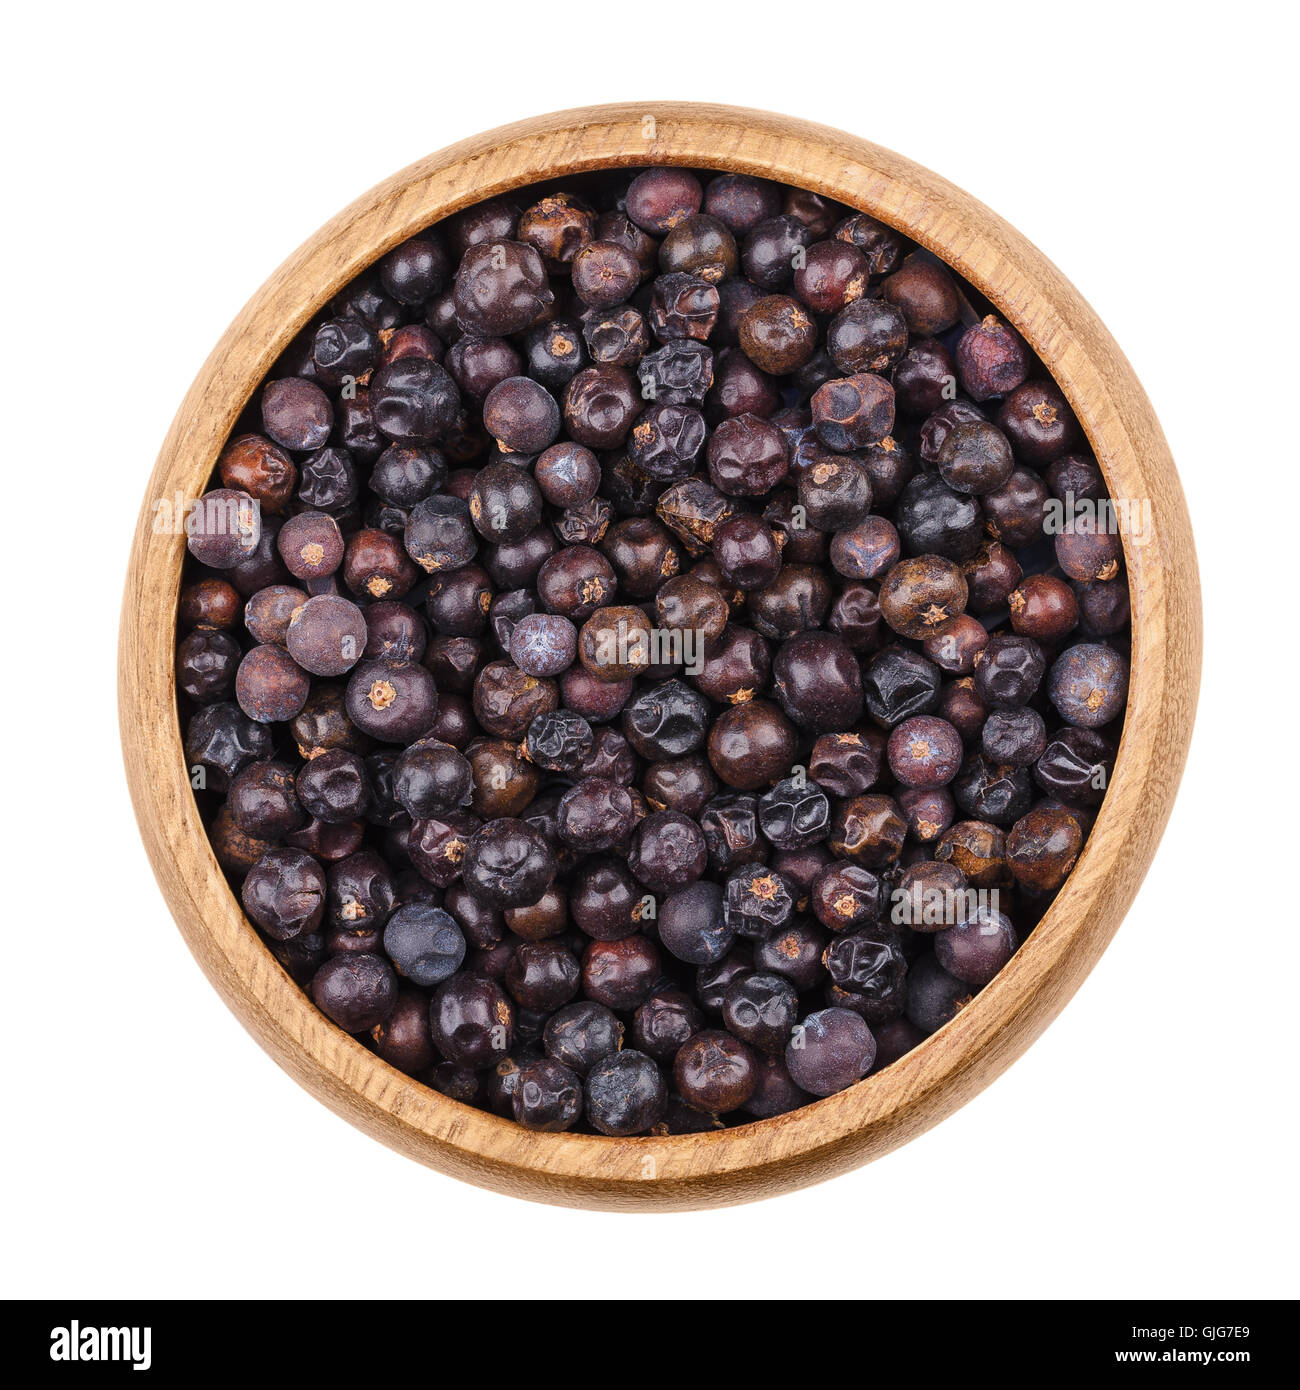 Juniper berries in a bowl on white background. Dried seed cones from Juniperus communis, a conifer, are used as - Stock Image